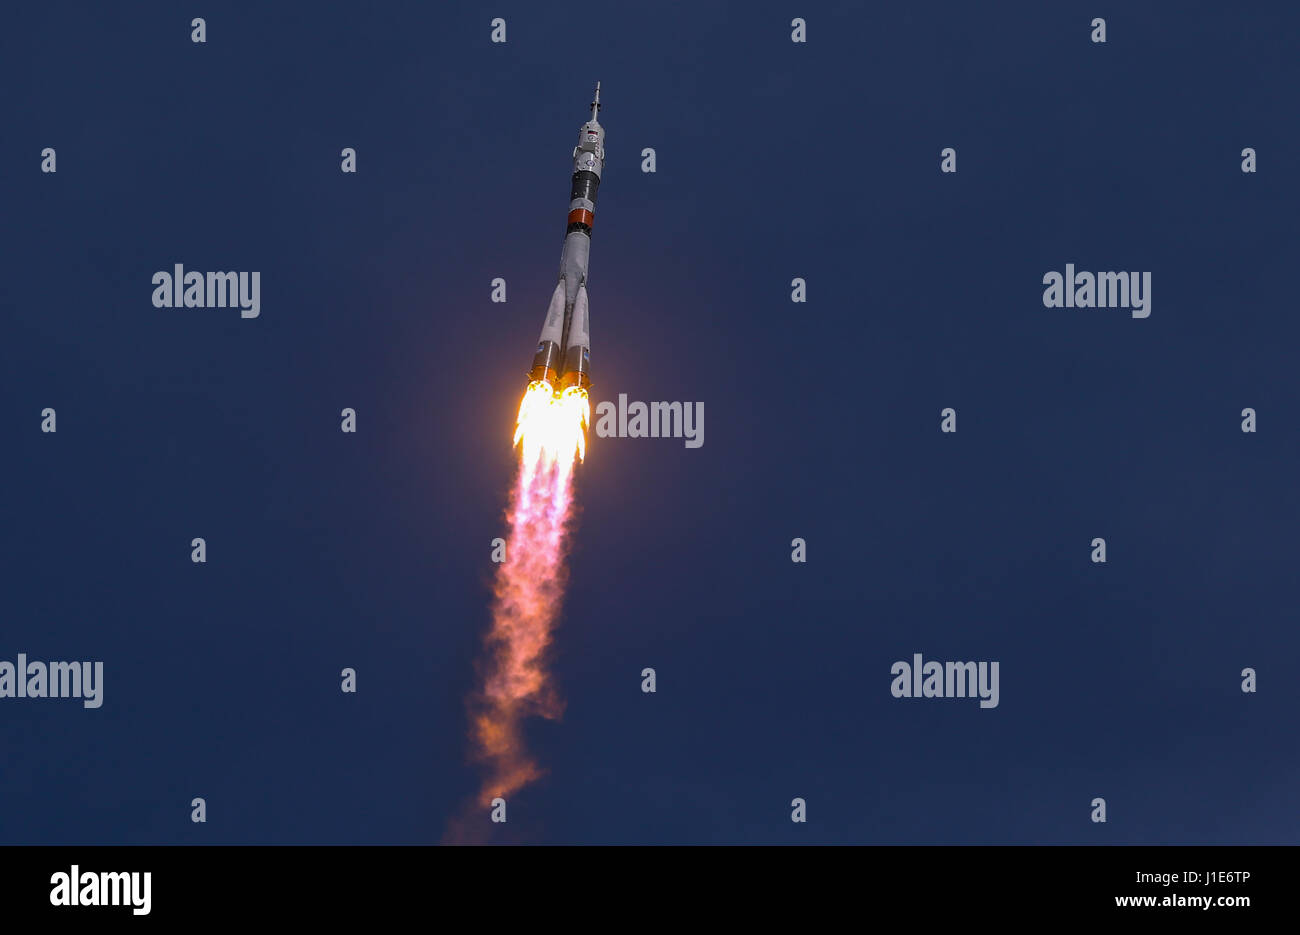 Baikonur Cosmodrome. 20th Apr, 2017. Russia's Soyuz MS-04 spacecraft blasts off from the launch pad at Baikonur - Stock Image